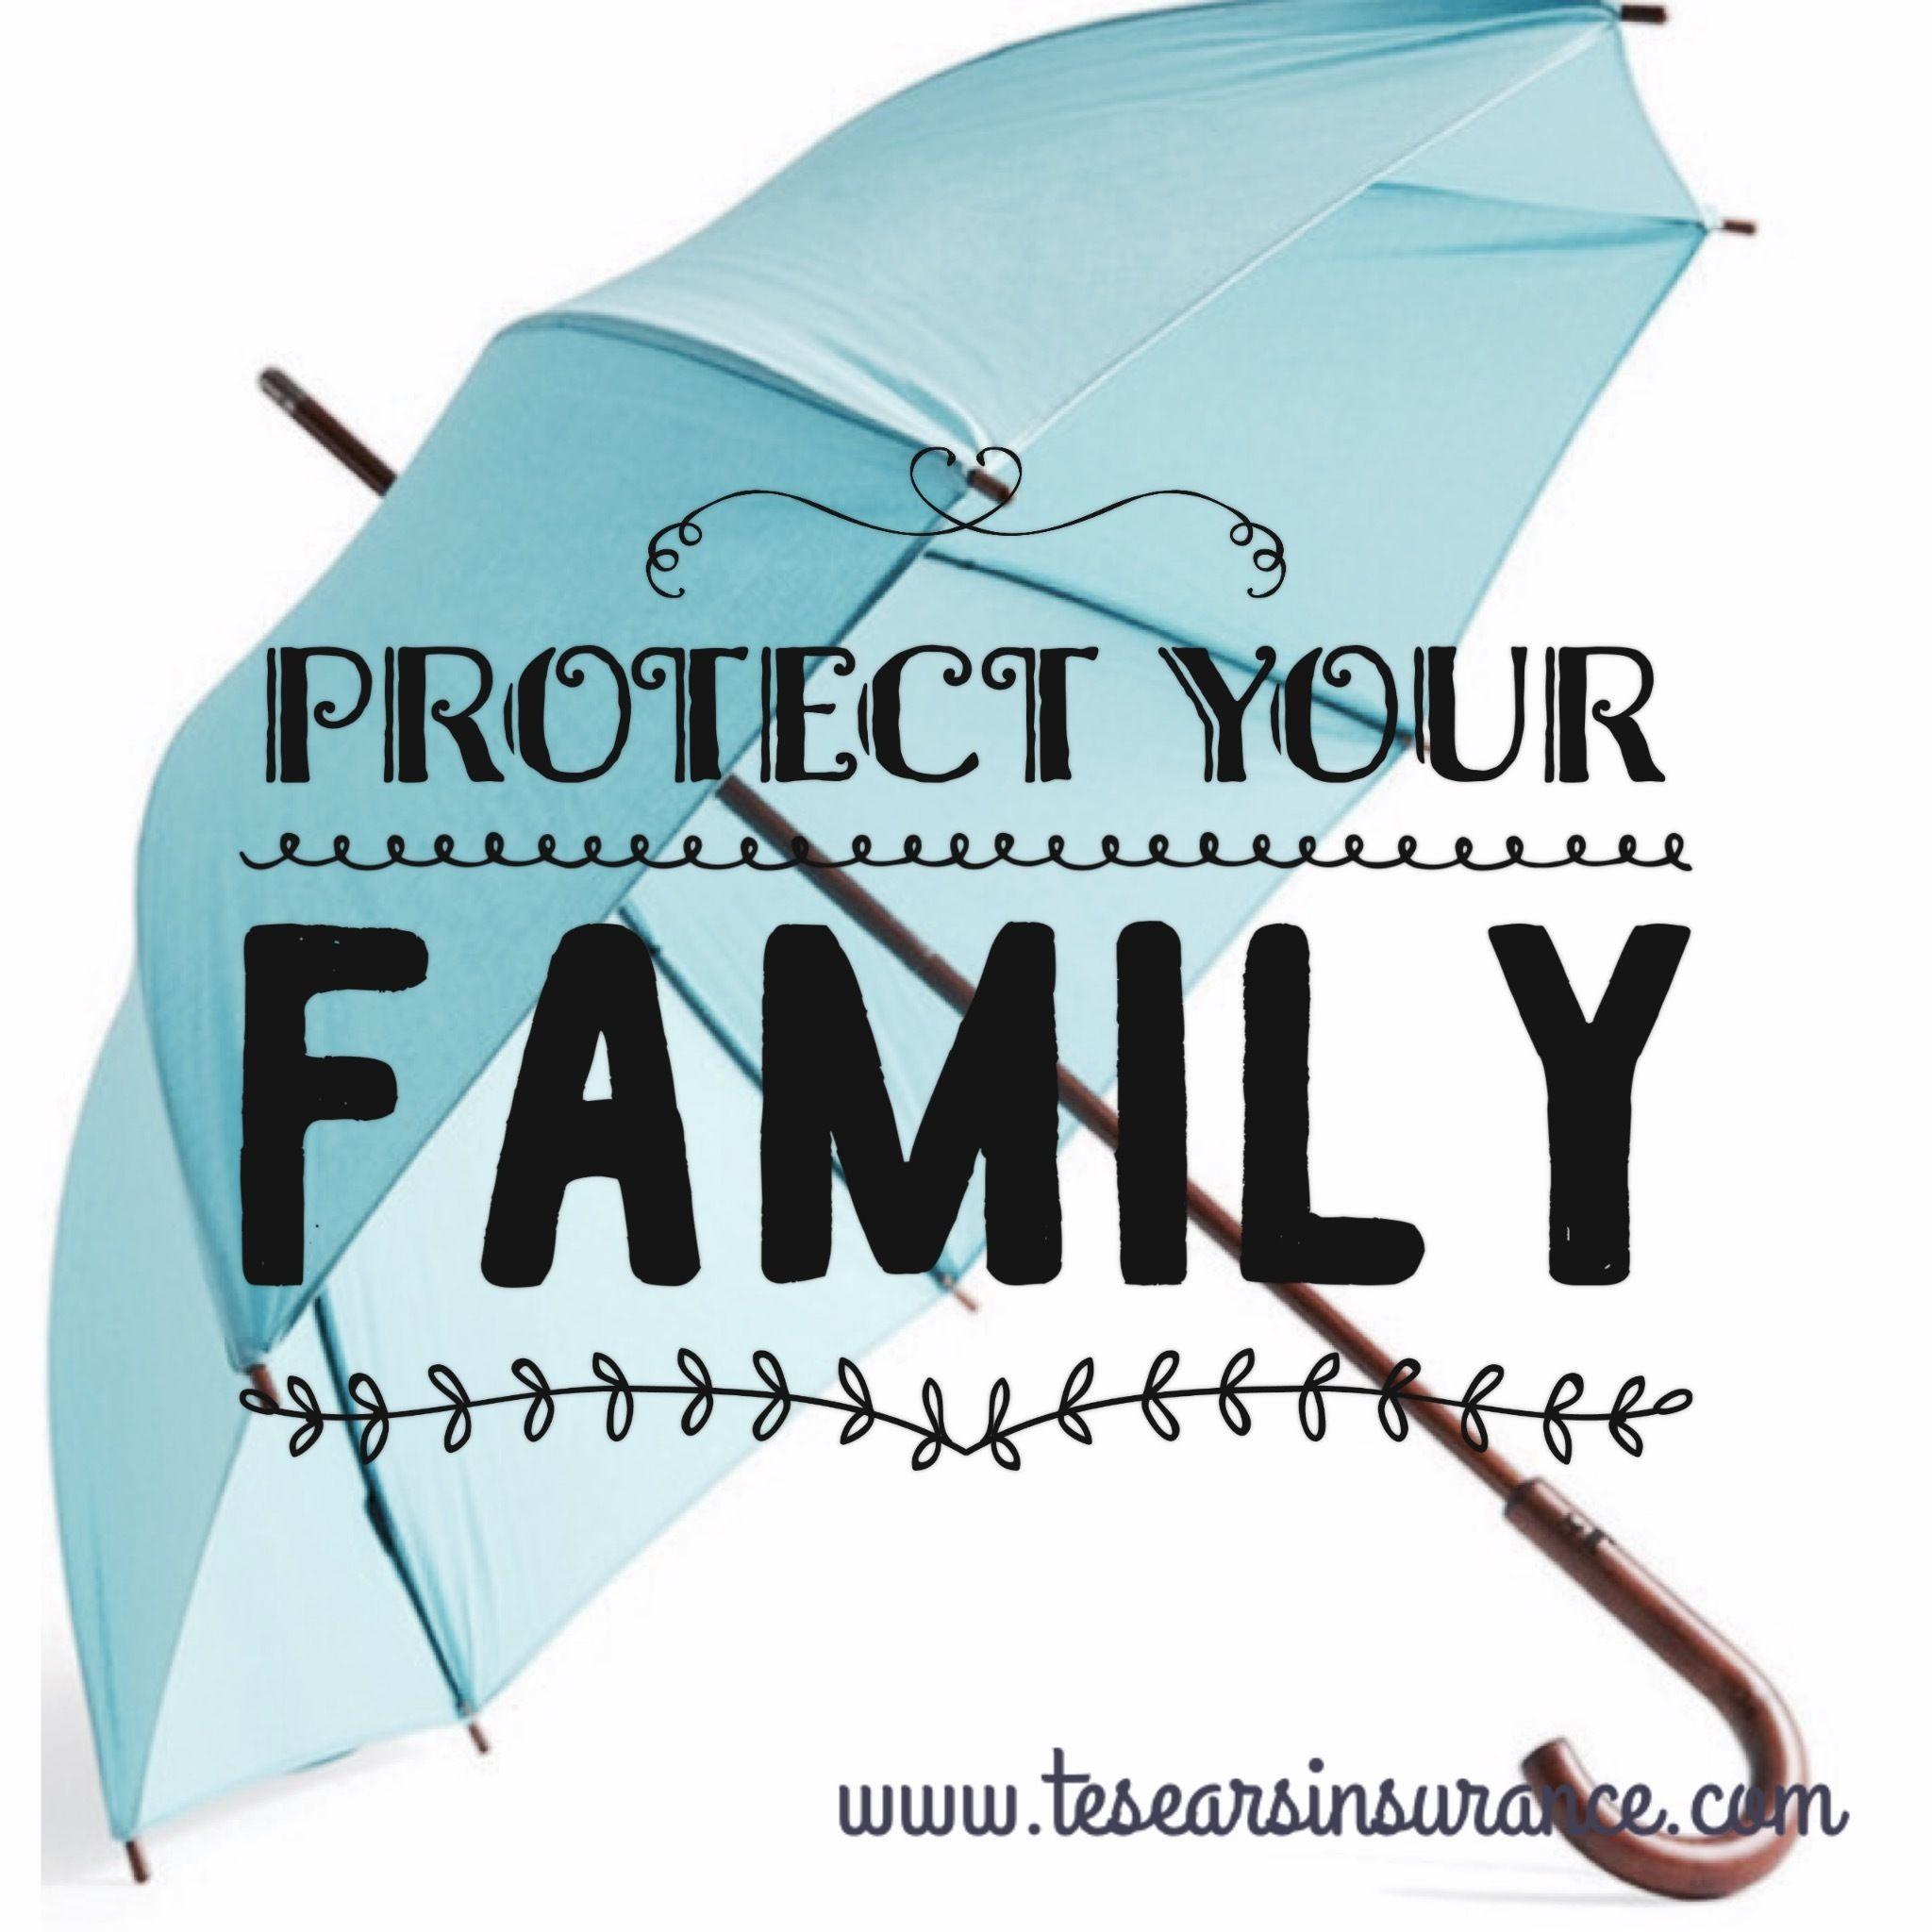 Ma Umbrella Insurance Thomas E Sears Insurance Agency Learn